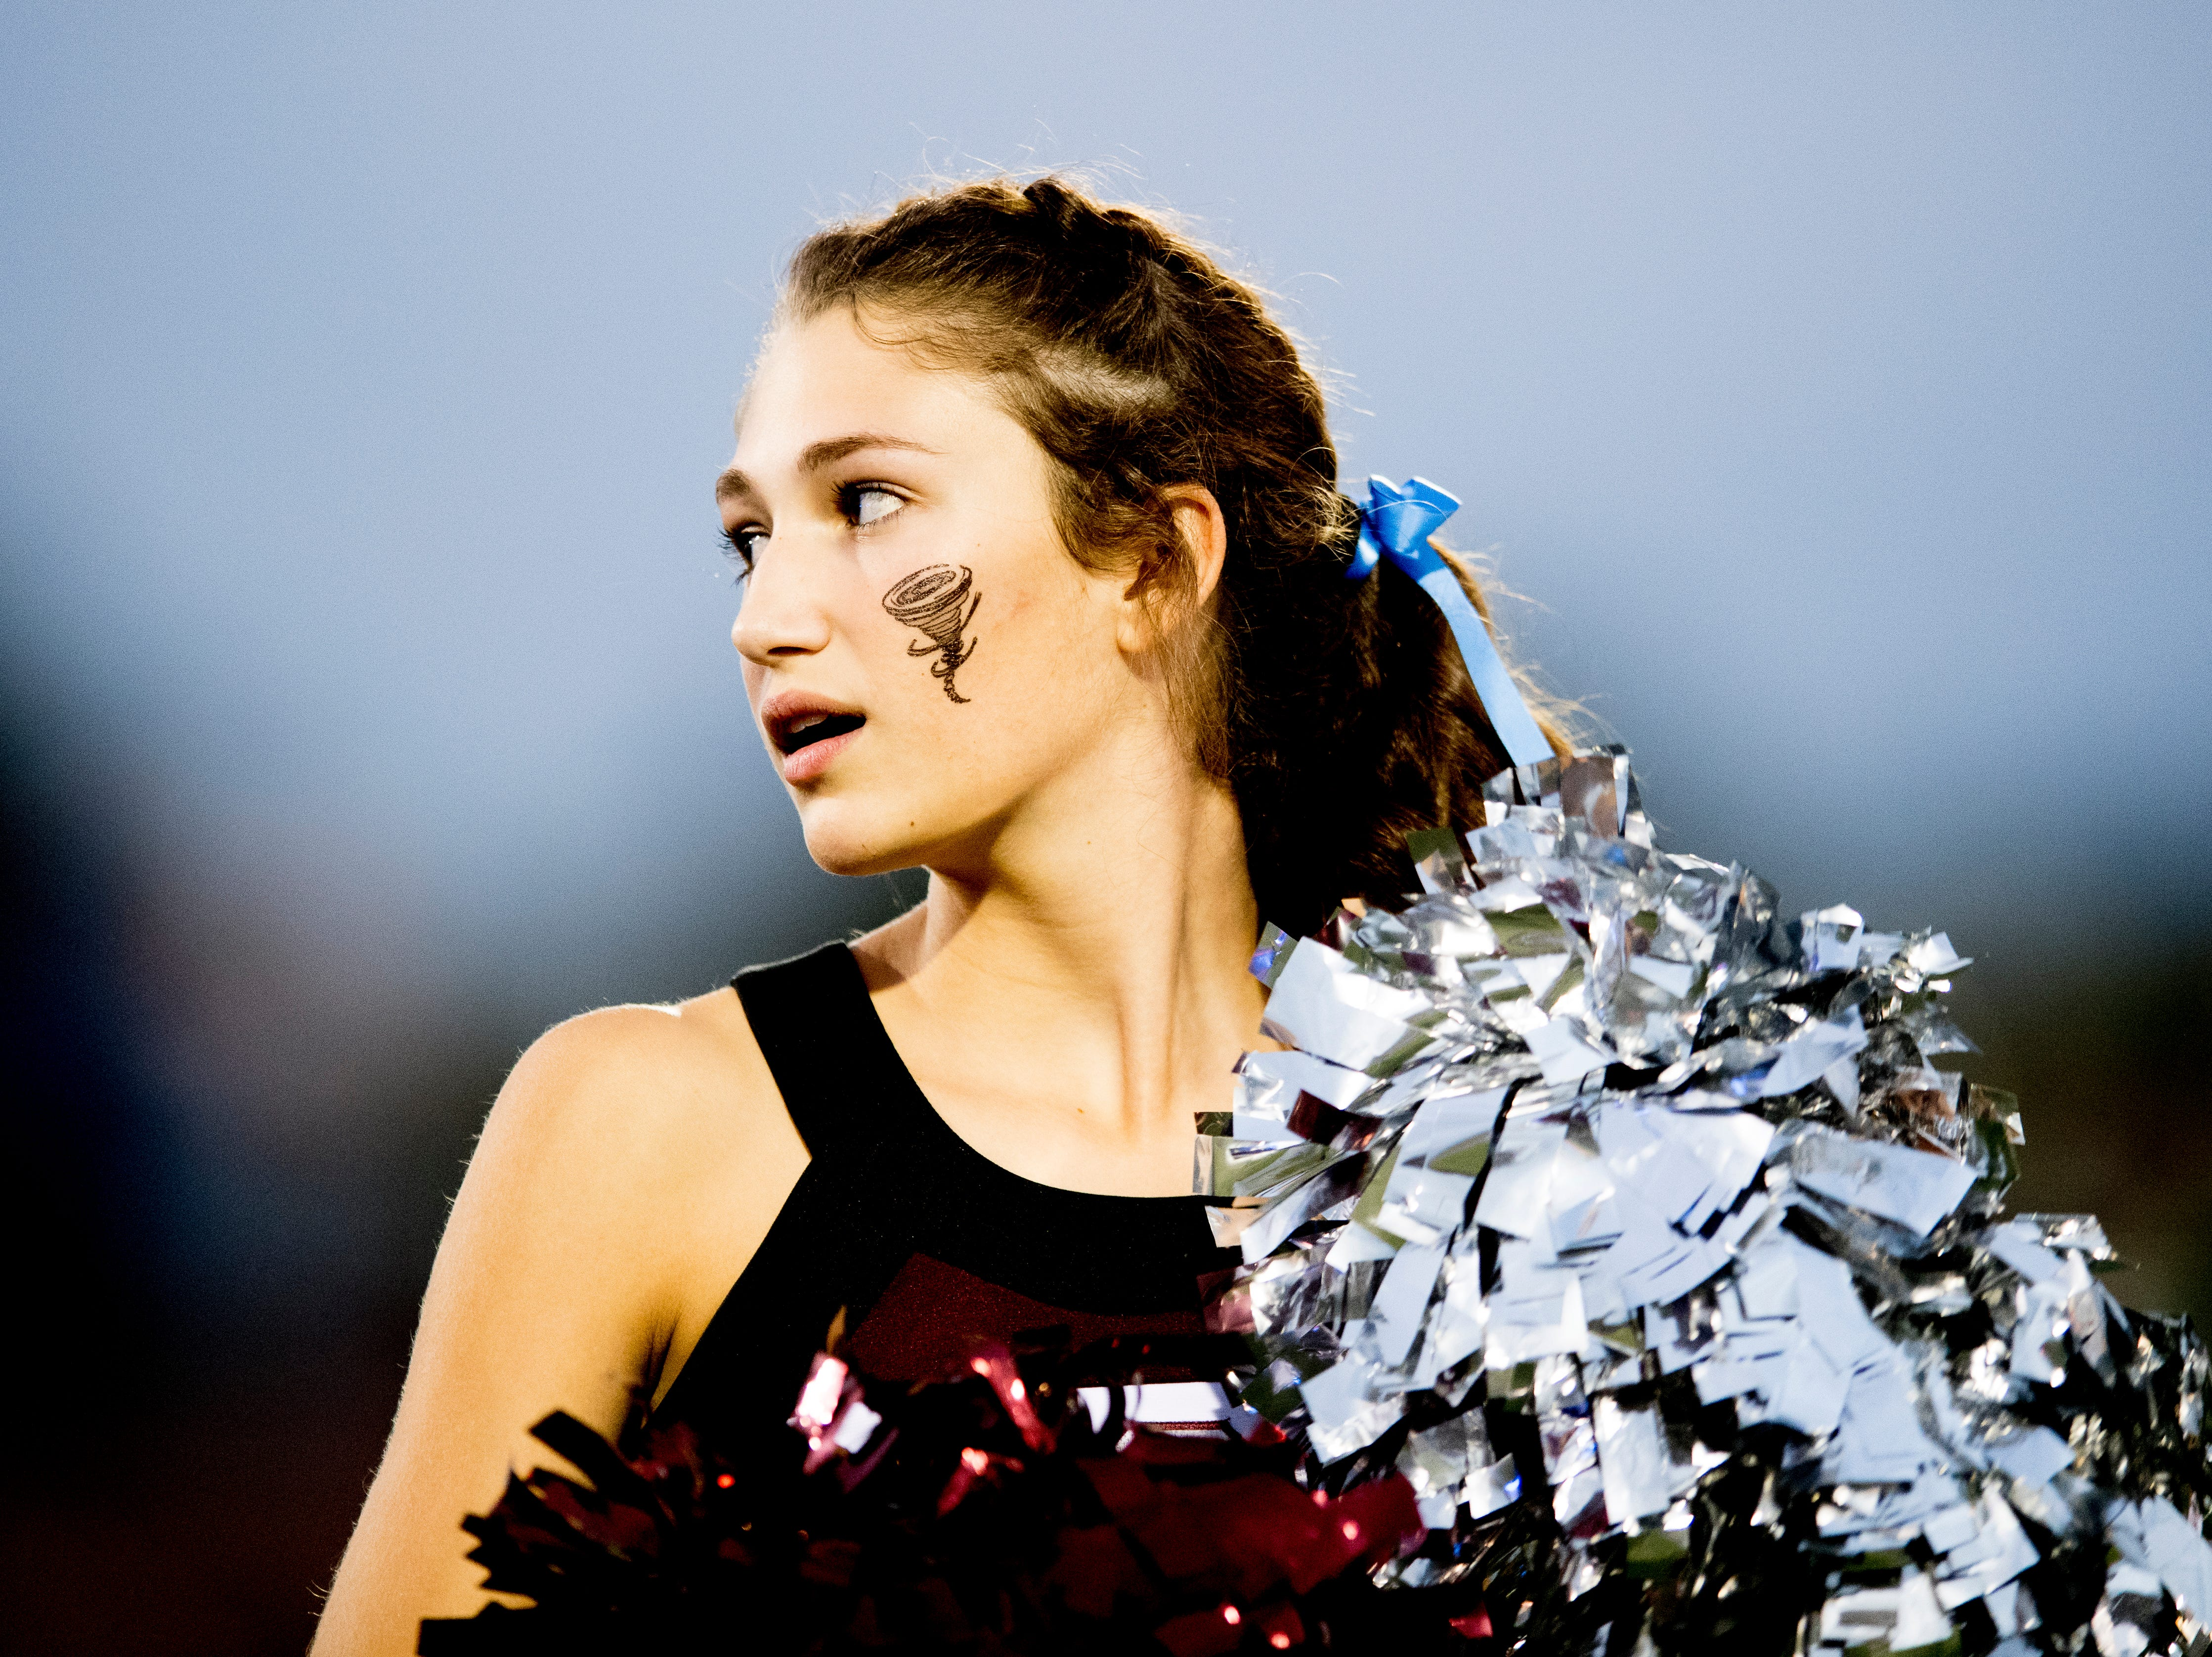 An Alcoa cheerleader watches the game during a game between Alcoa and Northview at Alcoa High School in Alcoa, Tennessee on Friday, September 28, 2018.